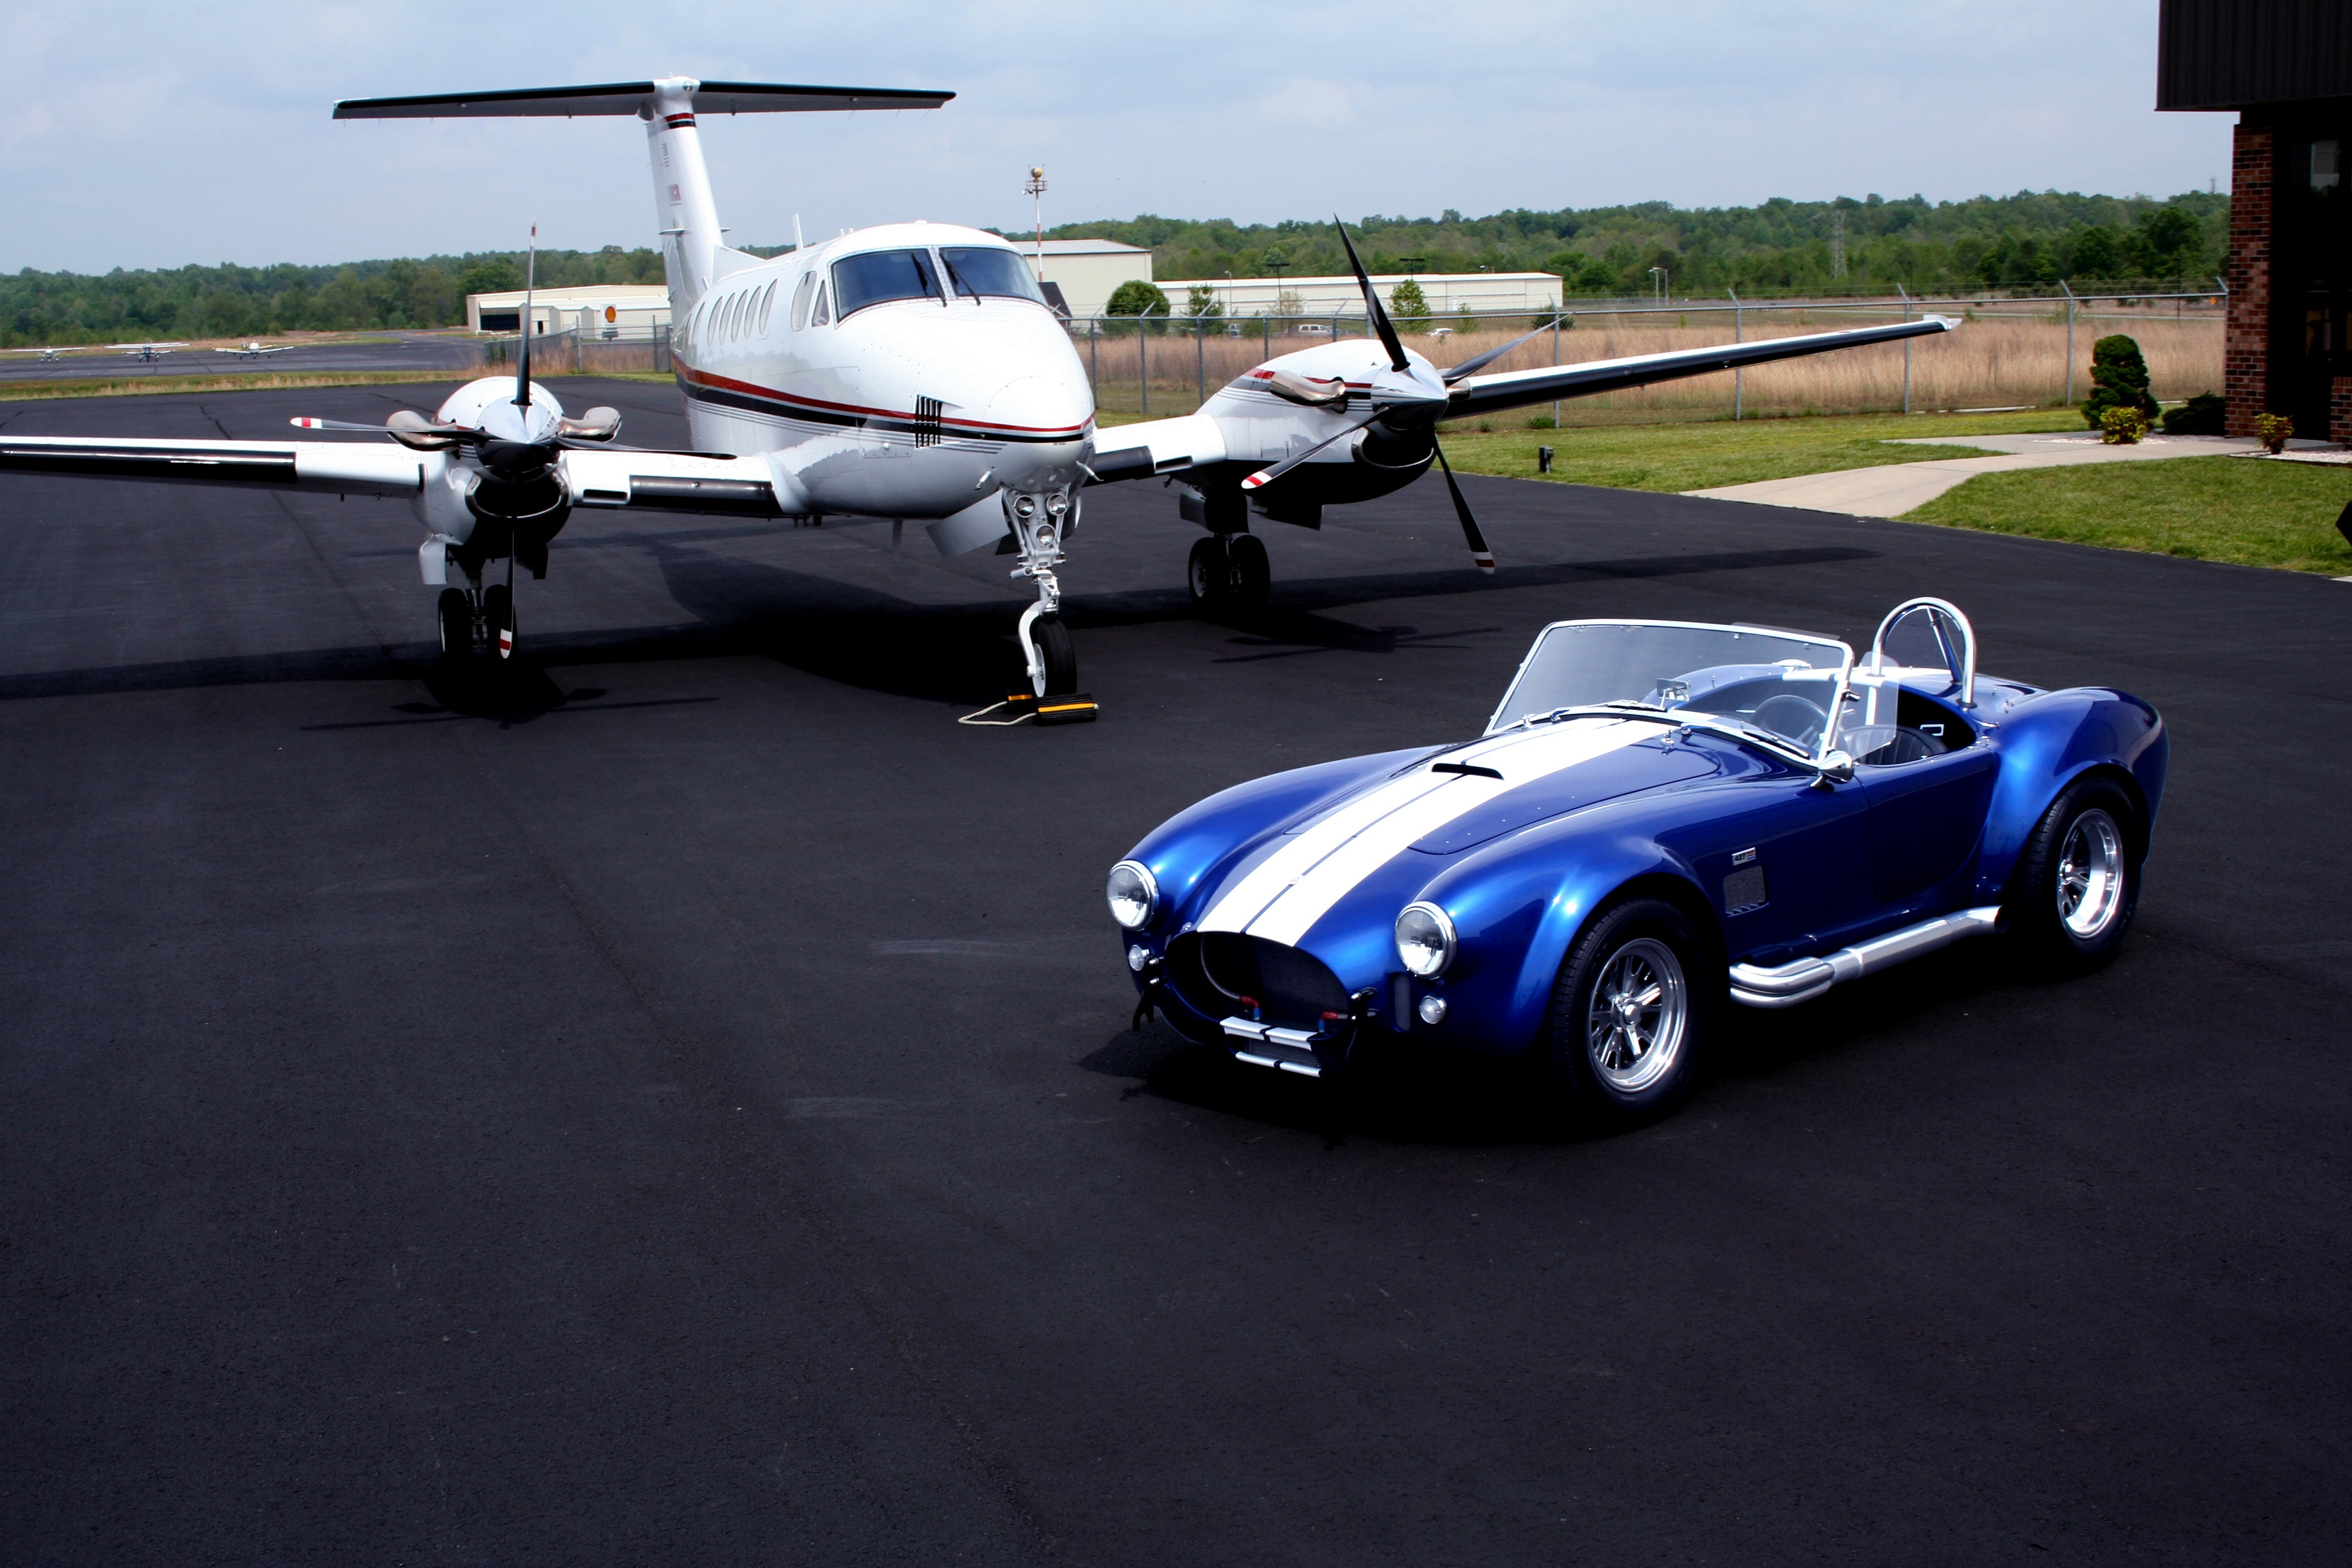 Classic Car 4k Wallpapers Free Stock Photo Of Air Strip Classic Car Private Plane